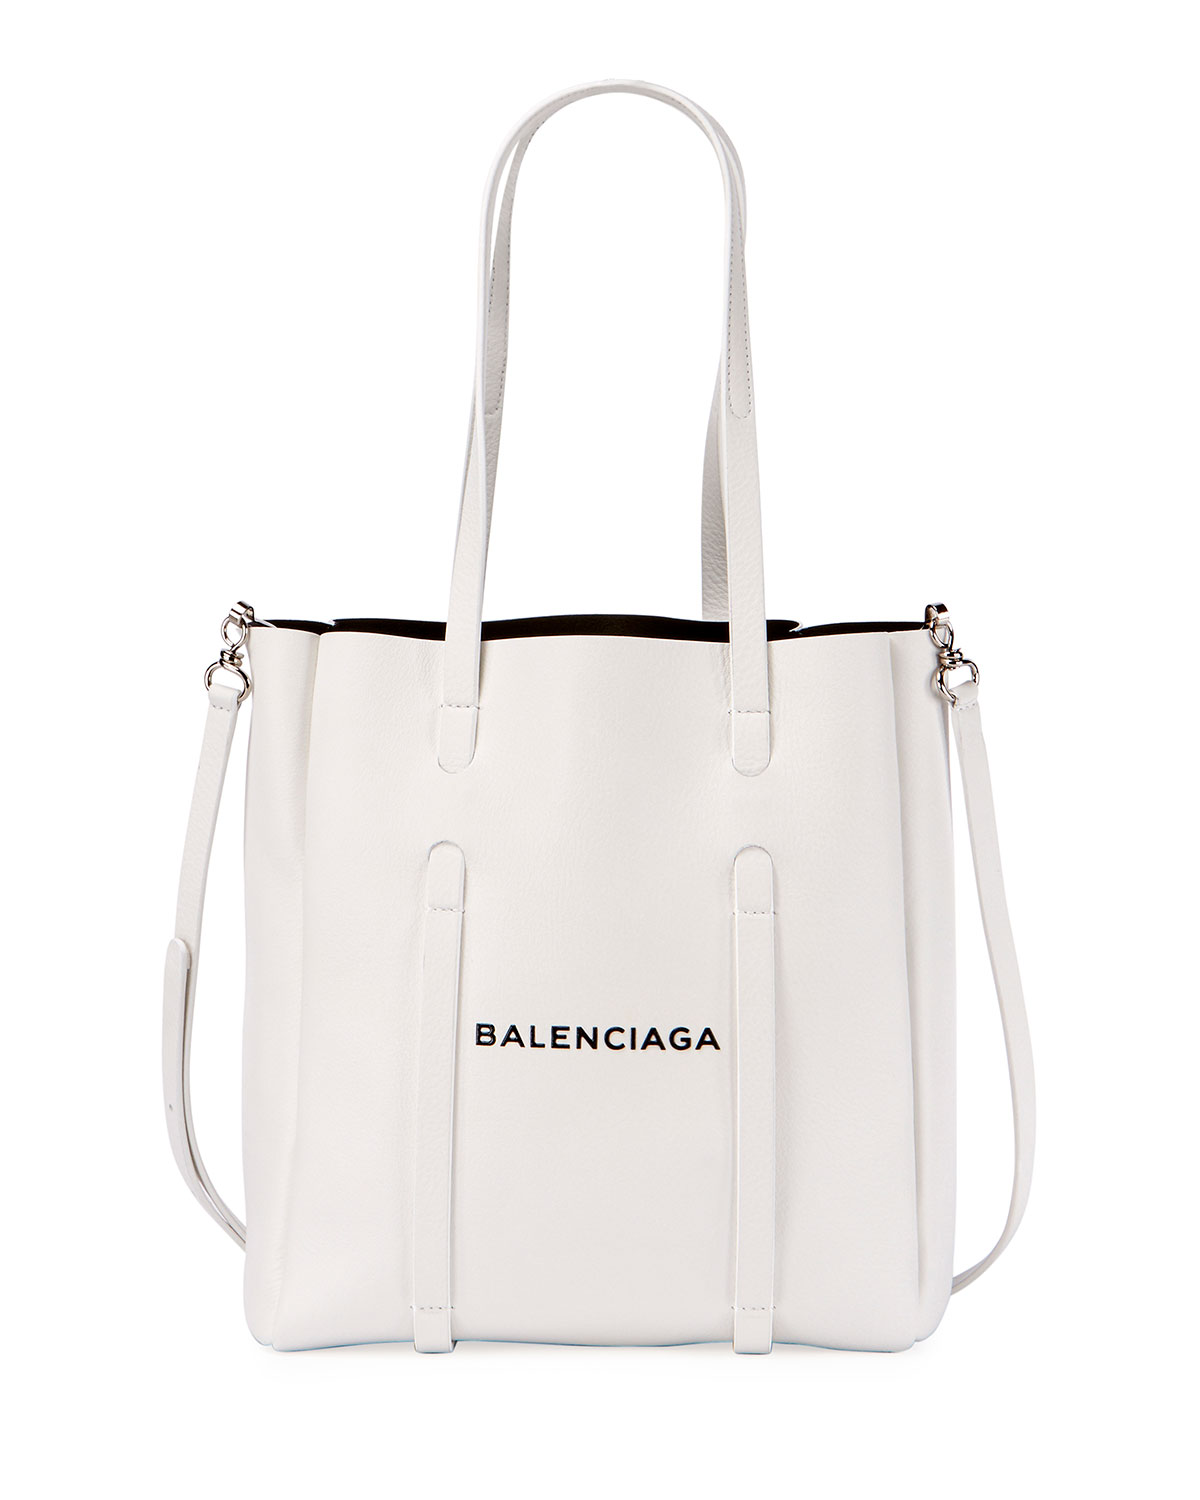 89bab16a7b Balenciaga Everyday Small Leather Logo Tote Bag